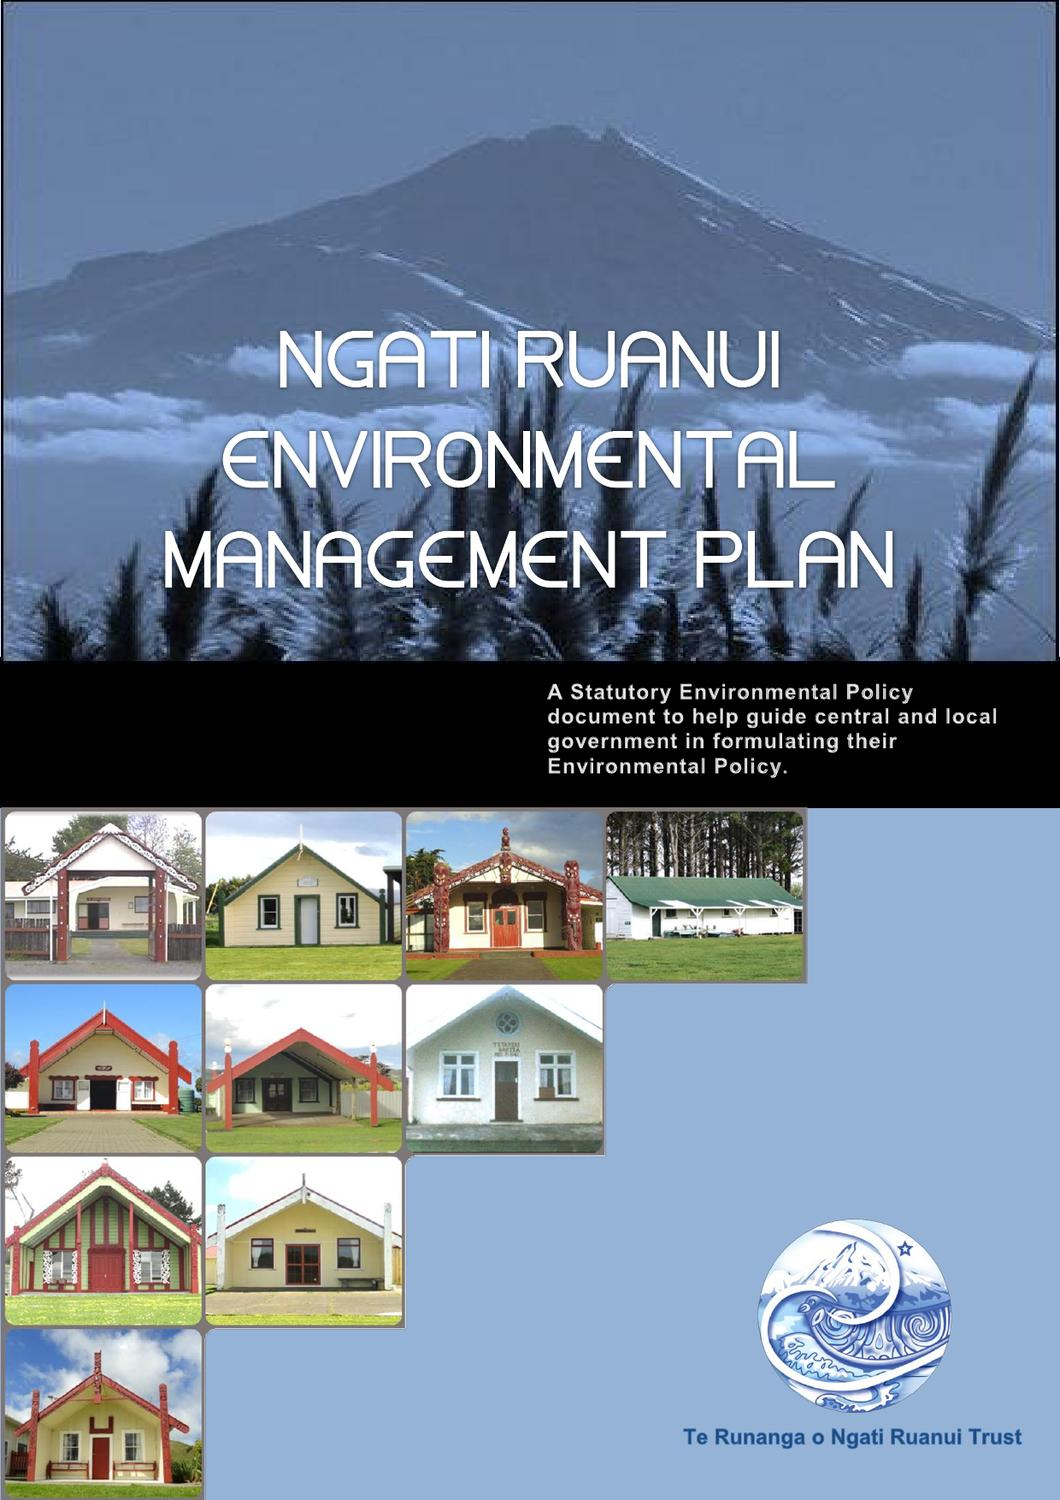 Environmental management plan by sarah lee rangi issuu for Aroha new zealand cuisine menu